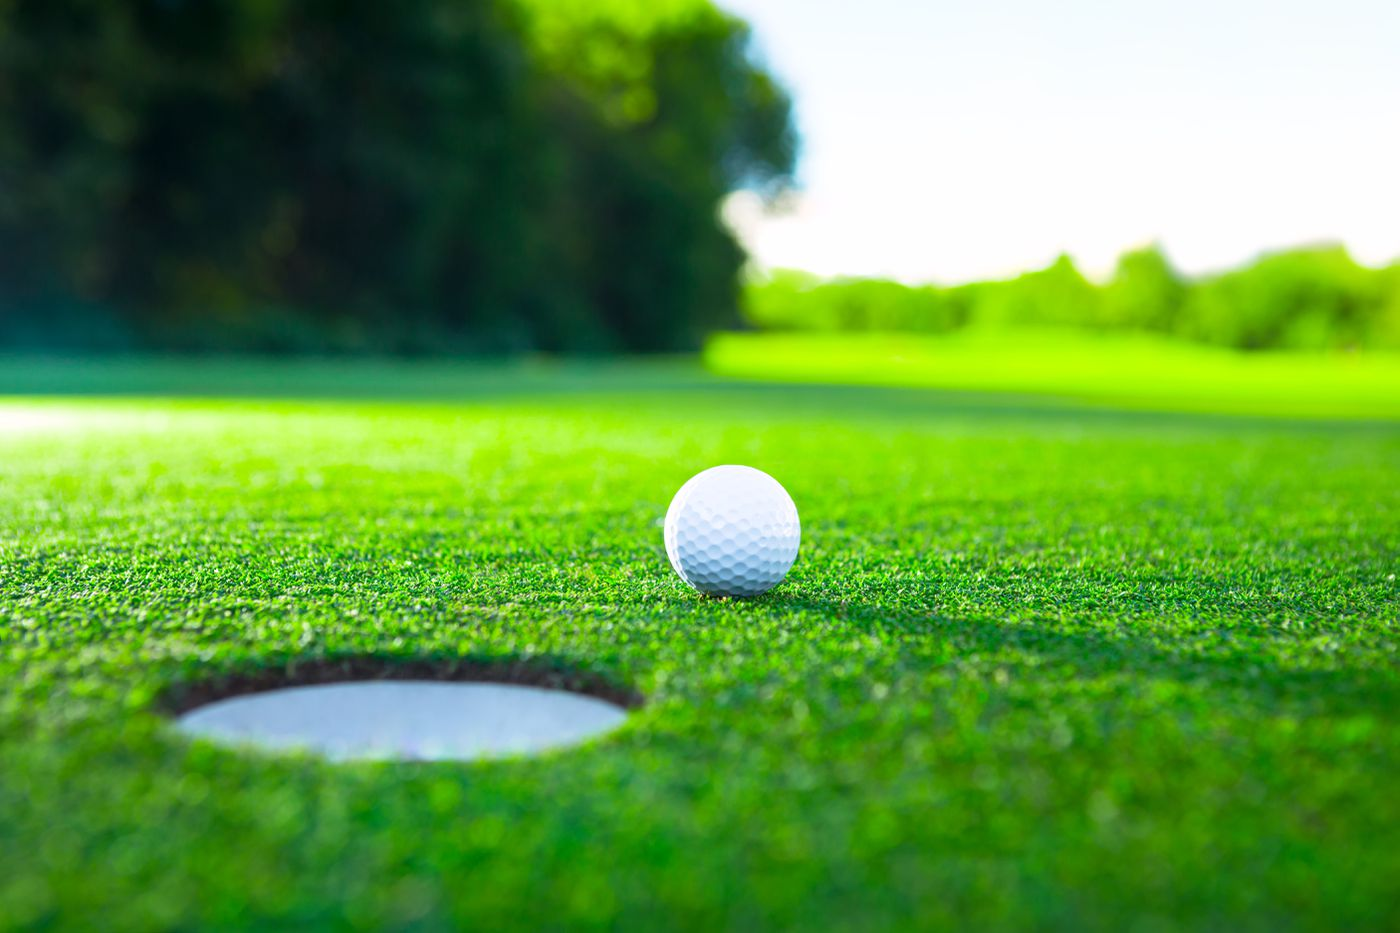 Bala's Scott McNeil leads Patterson Cup by one shot